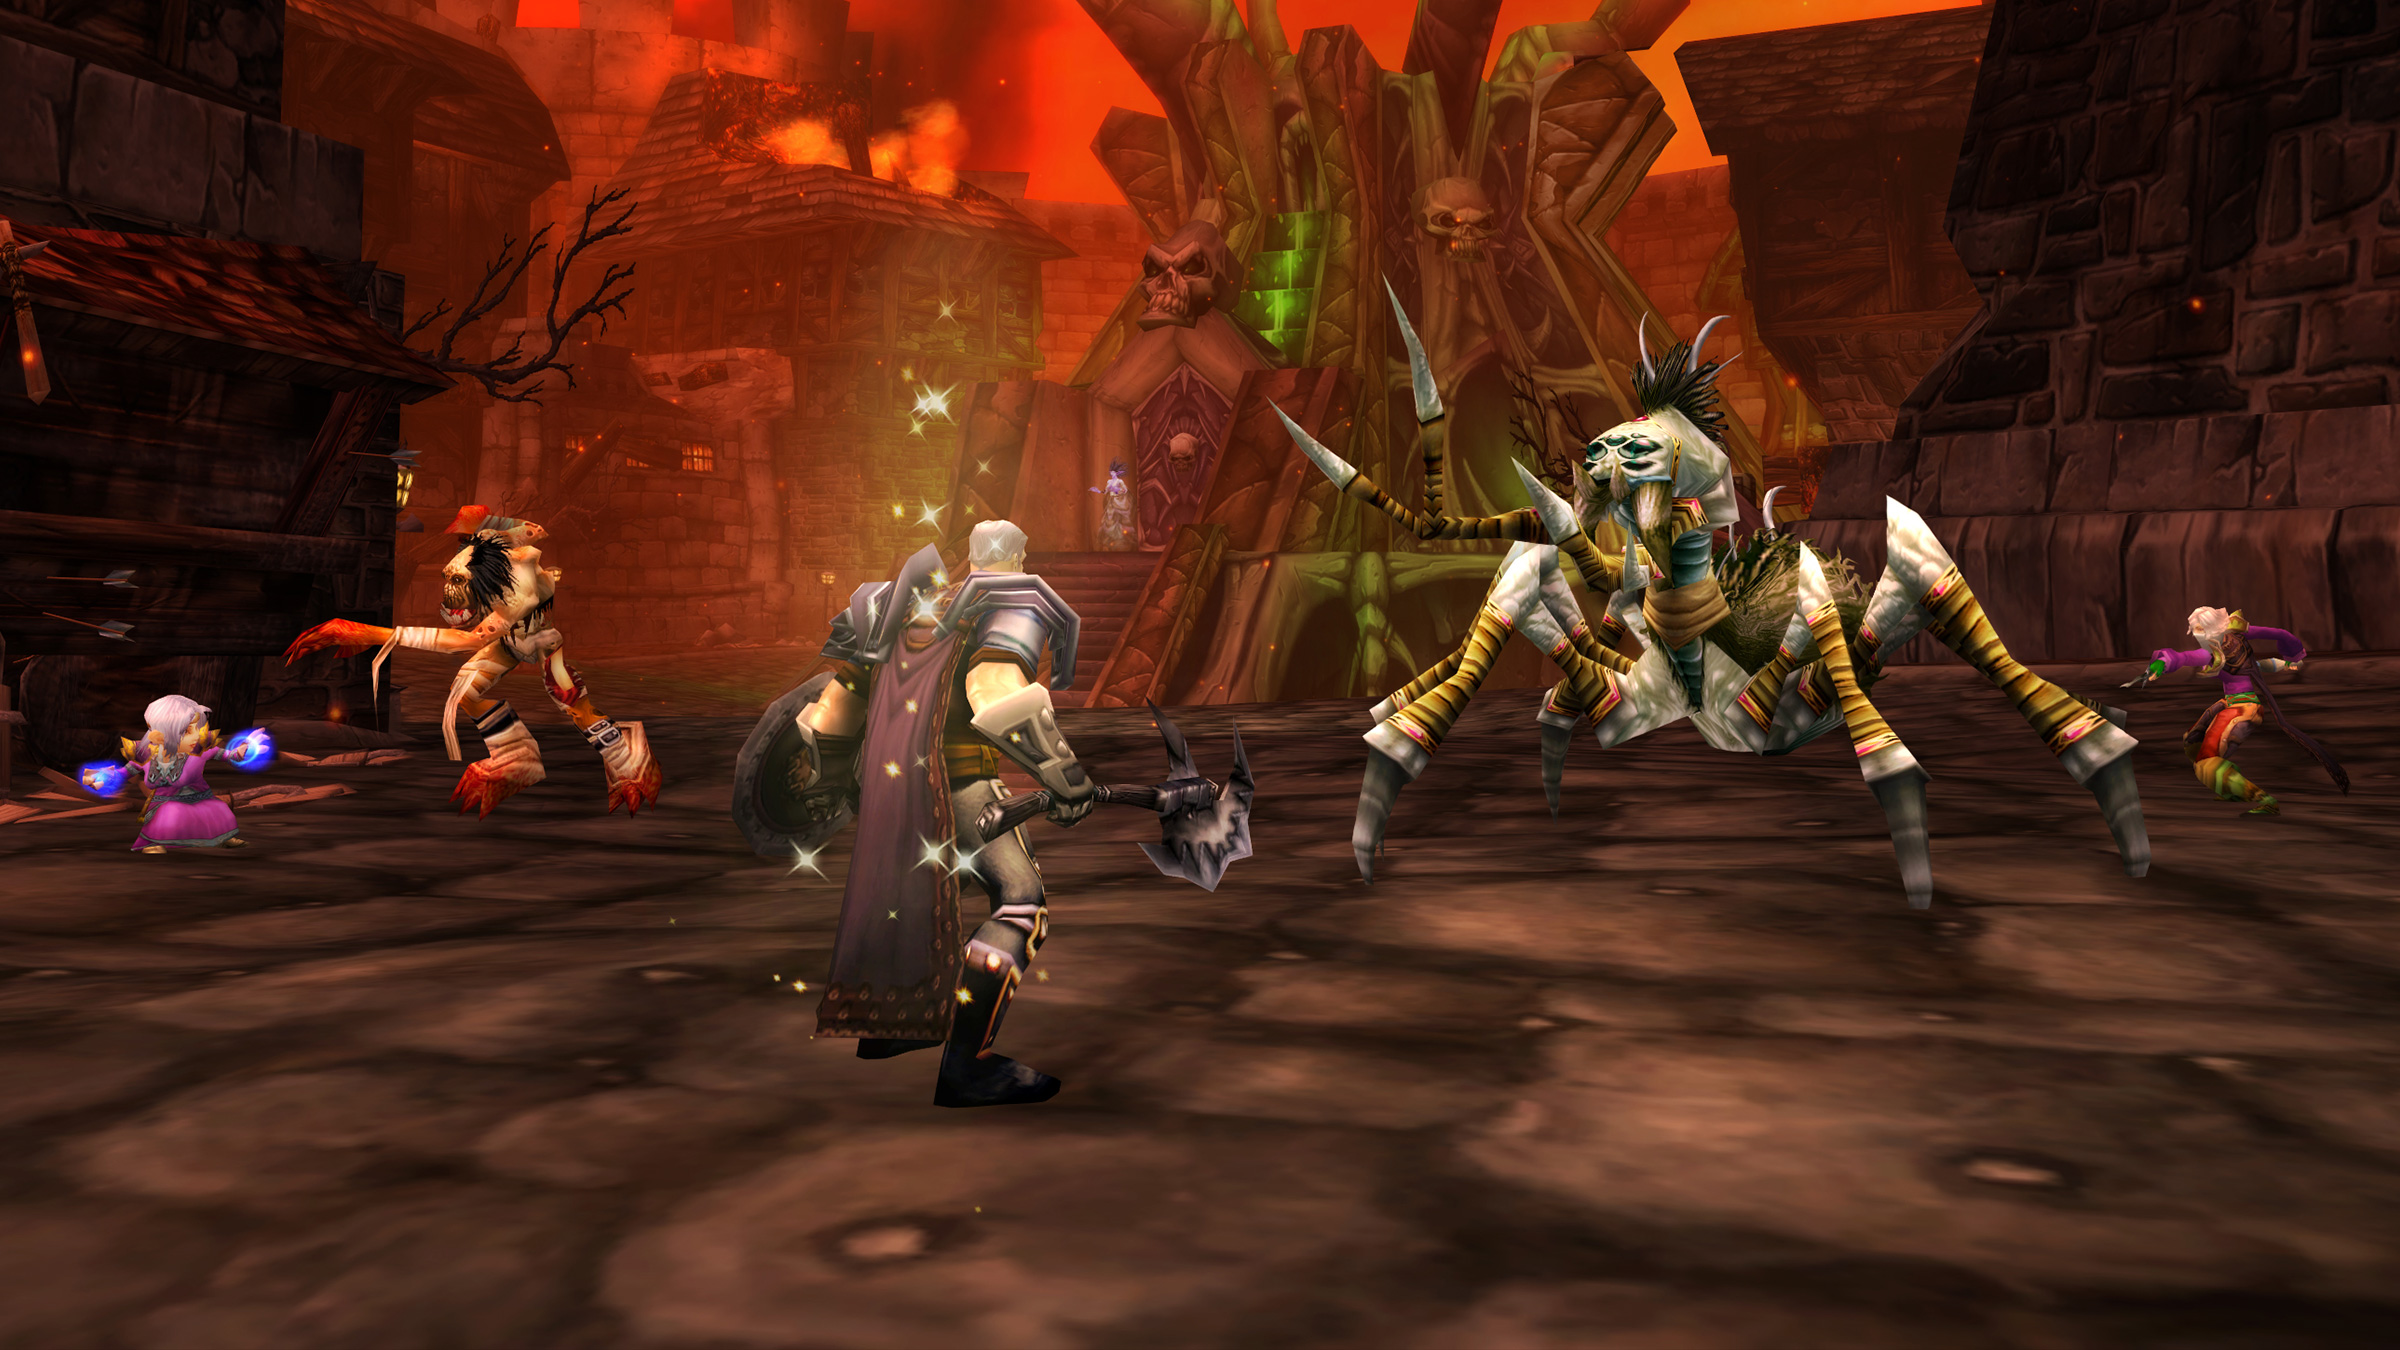 Risorse di World of Warcraft Classic per la community